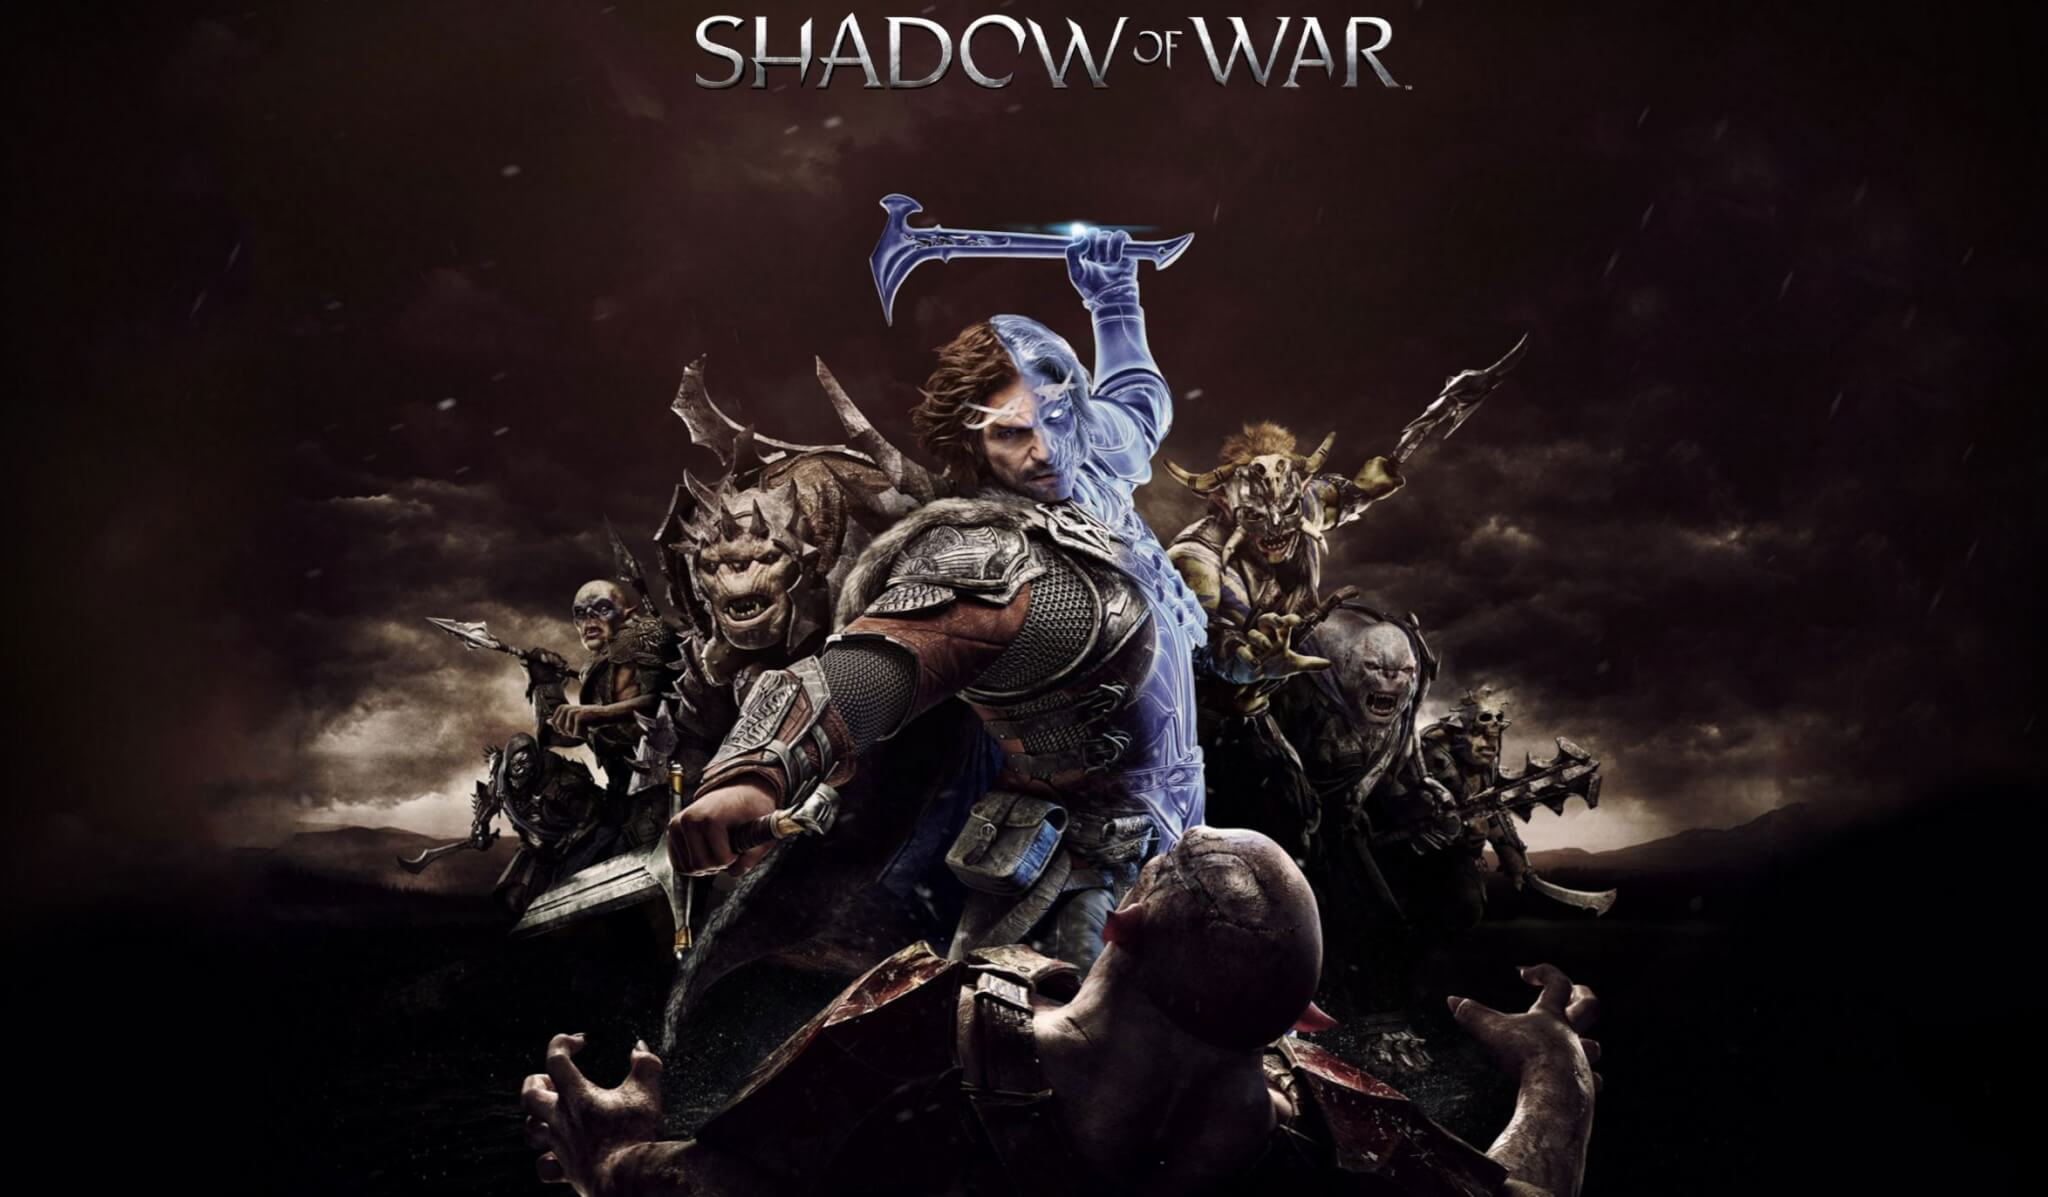 Middle-earth: Shadow of War has some seriously harsh combat.